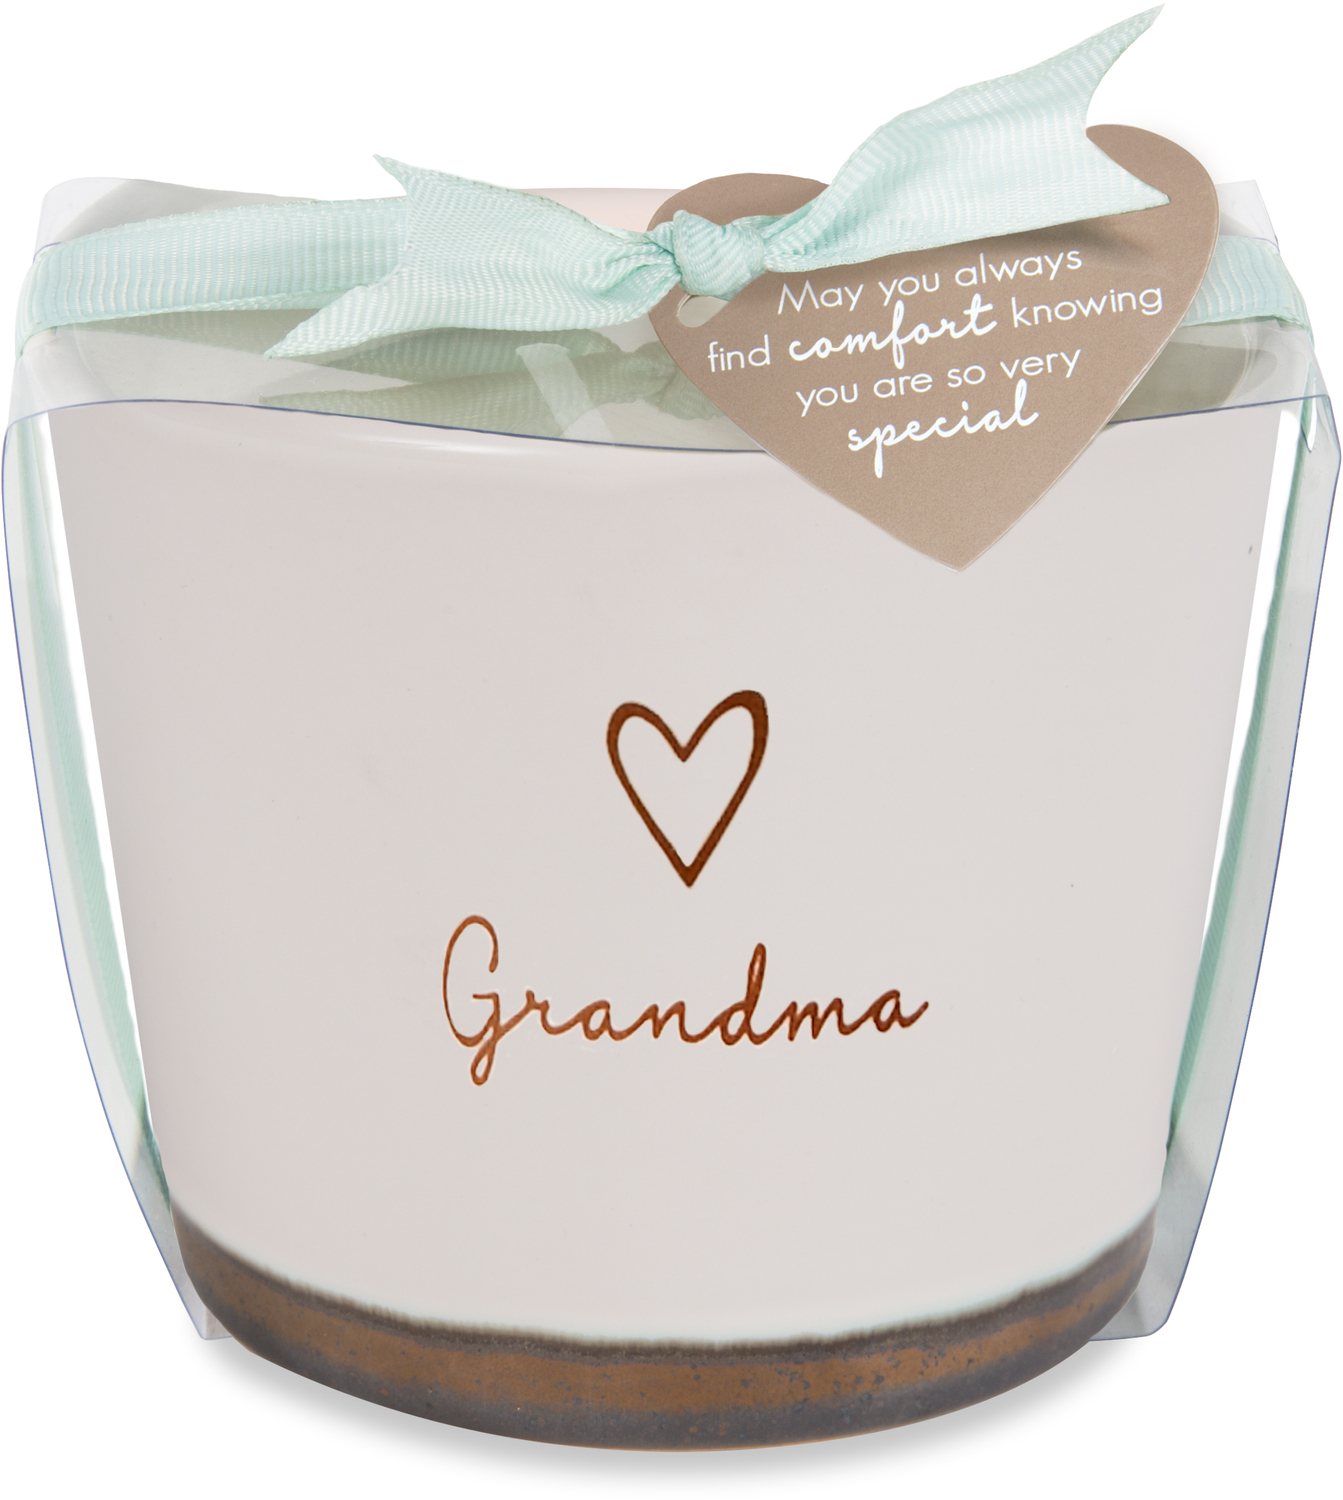 Grandma by Comfort Collection - Grandma - 8 oz - 100% Soy Wax Candle Scent: Tranquility